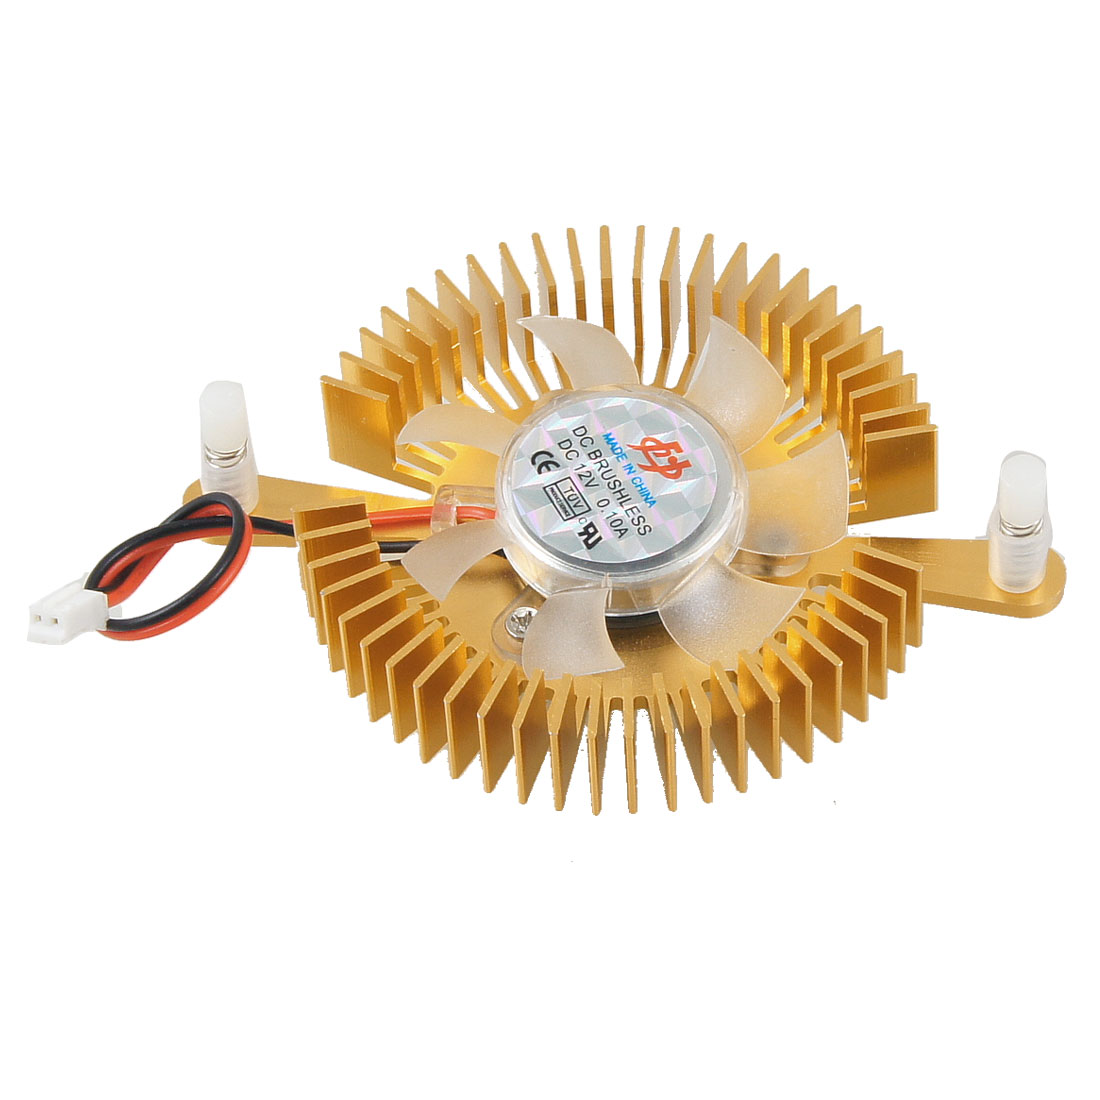 Gold Tone 2 Terminals Connector 7 Blades Round Shaped Cooling Fan for PC Laptop CPU